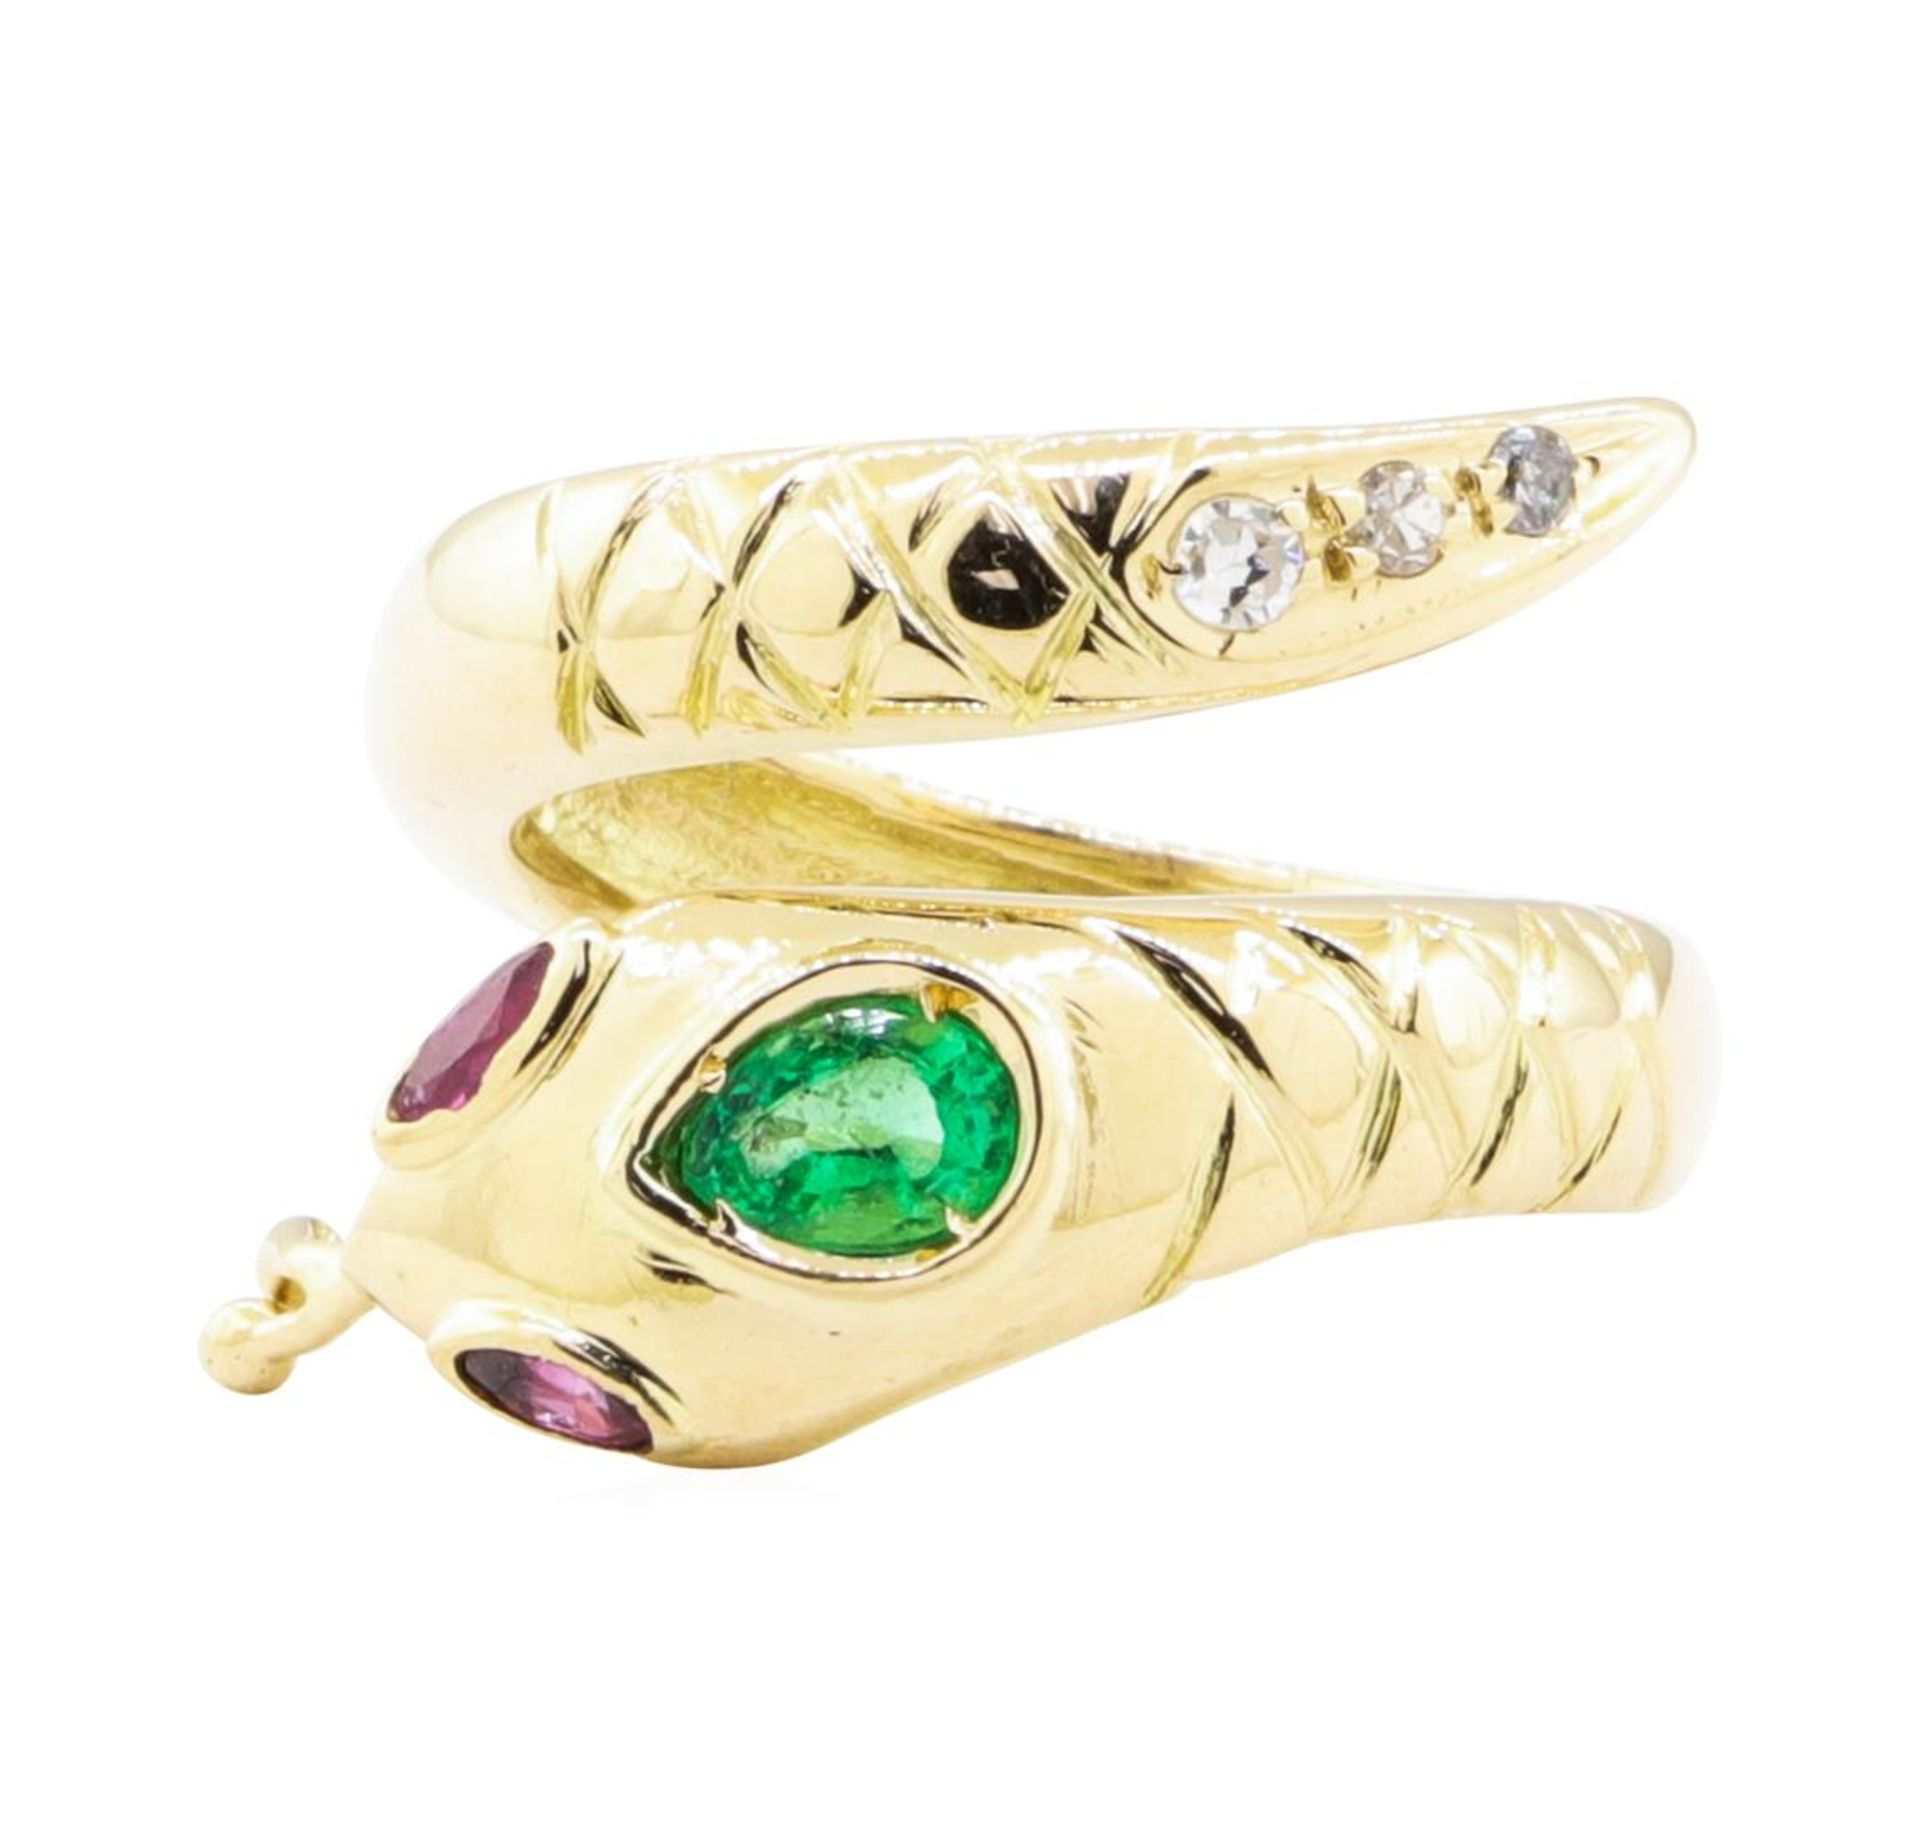 0.66ctw Emerald, Ruby, and Diamond Snake Ring - 14KT Yellow Gold - Image 2 of 4